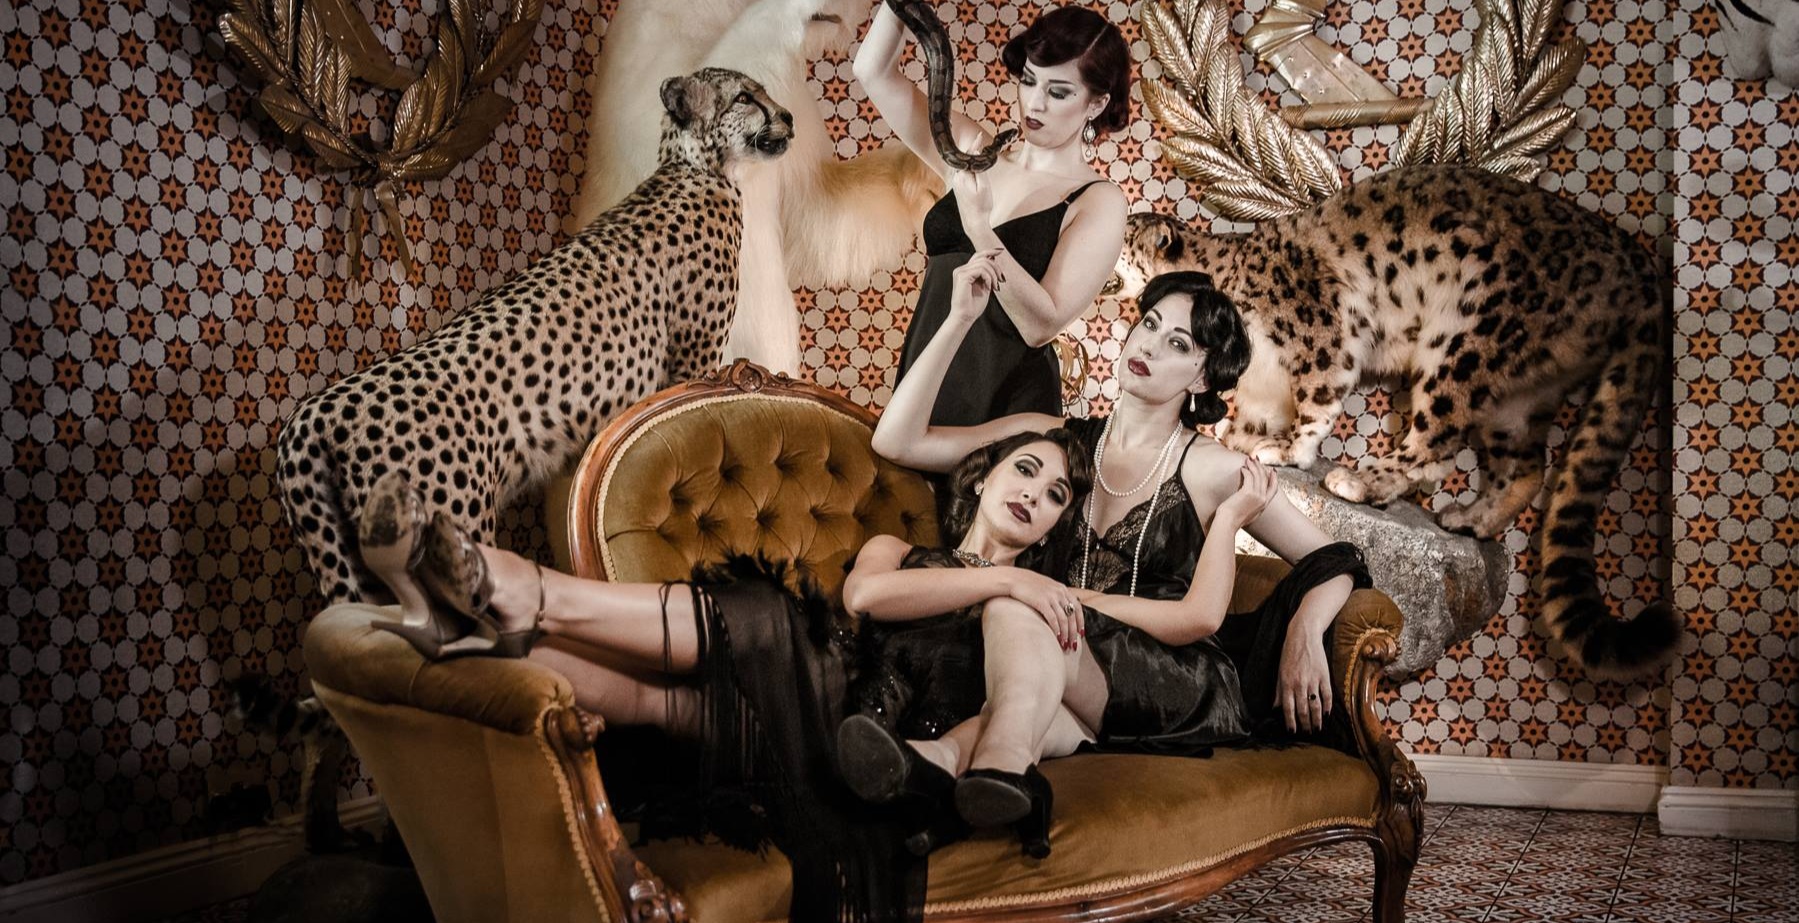 GIN HOUSE BURLESQUE - The new age Winter Revue